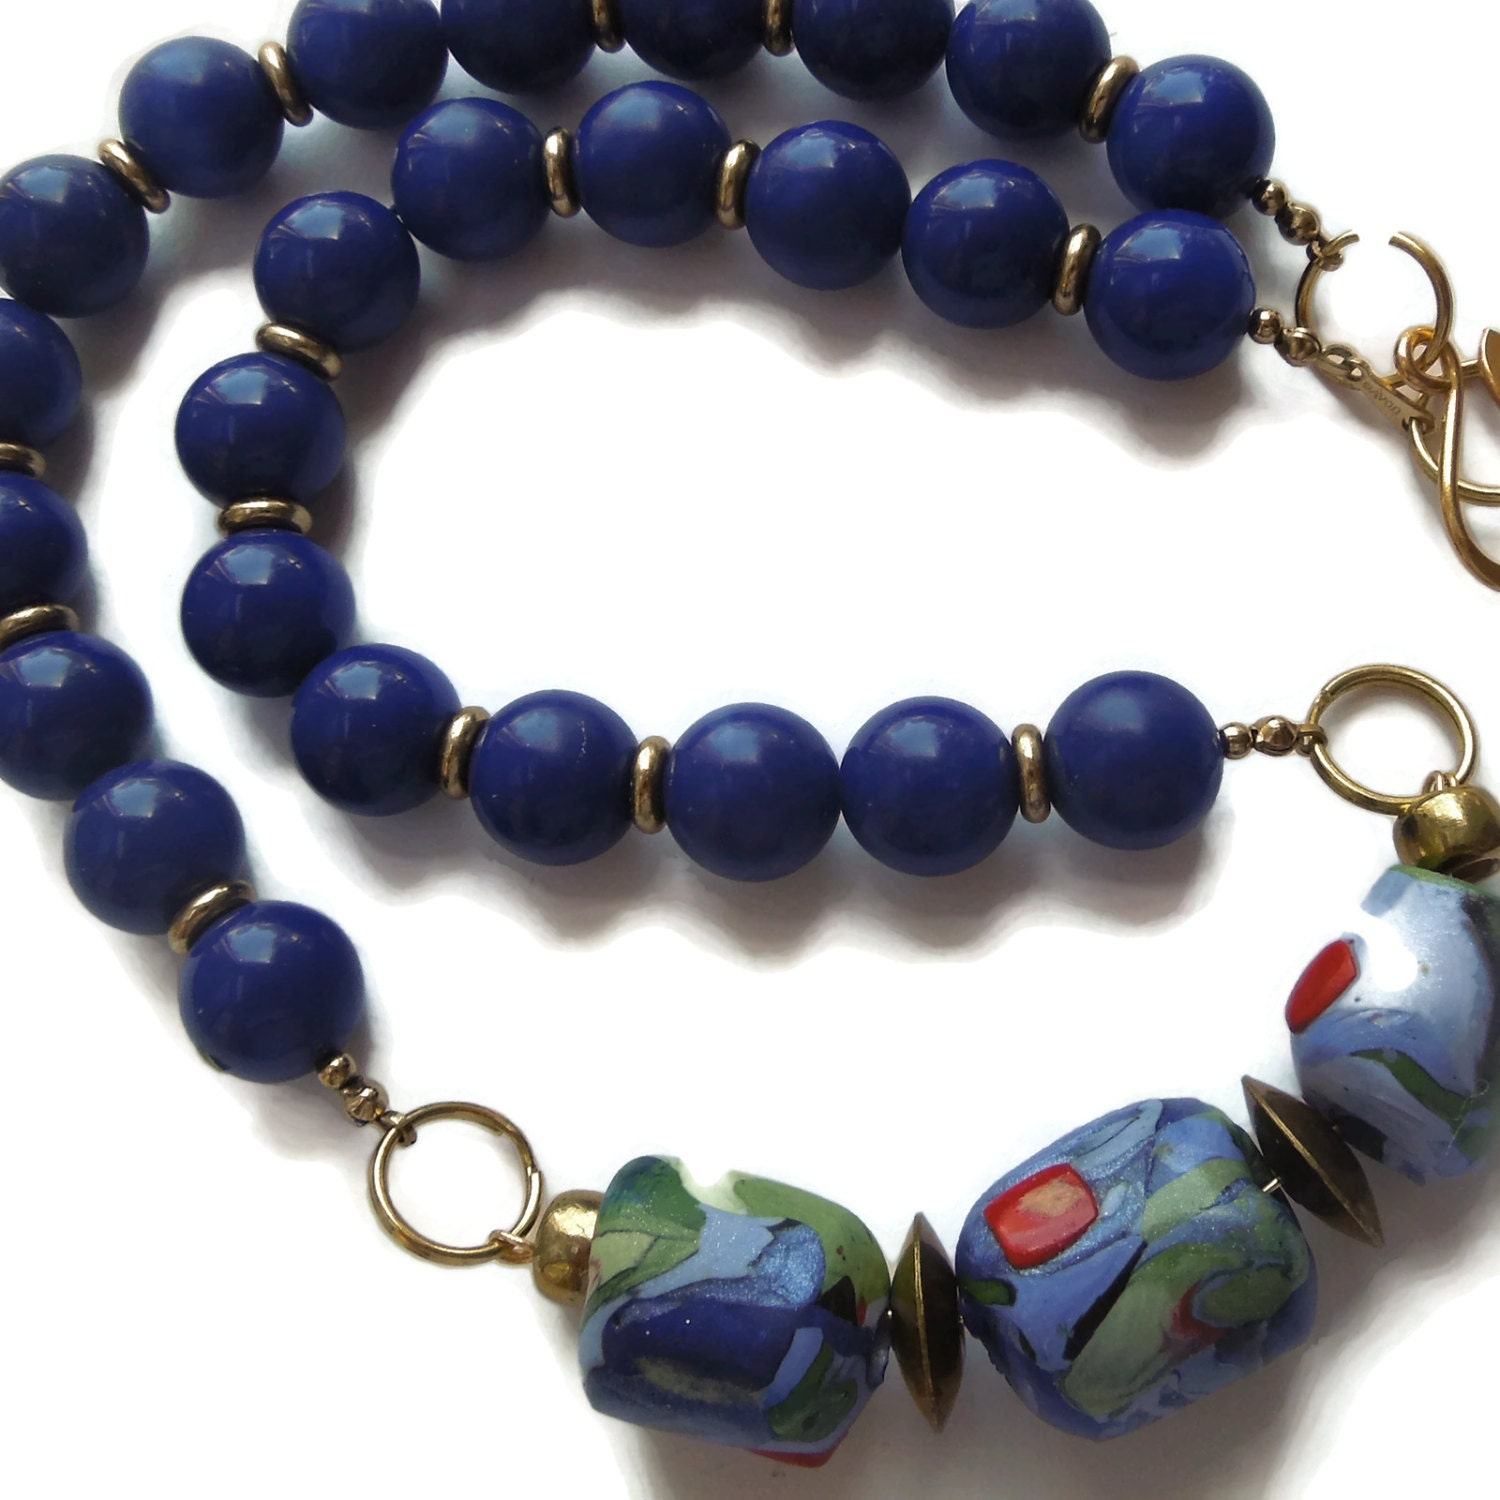 bead emoriejordon image necklace products collar blue beaded